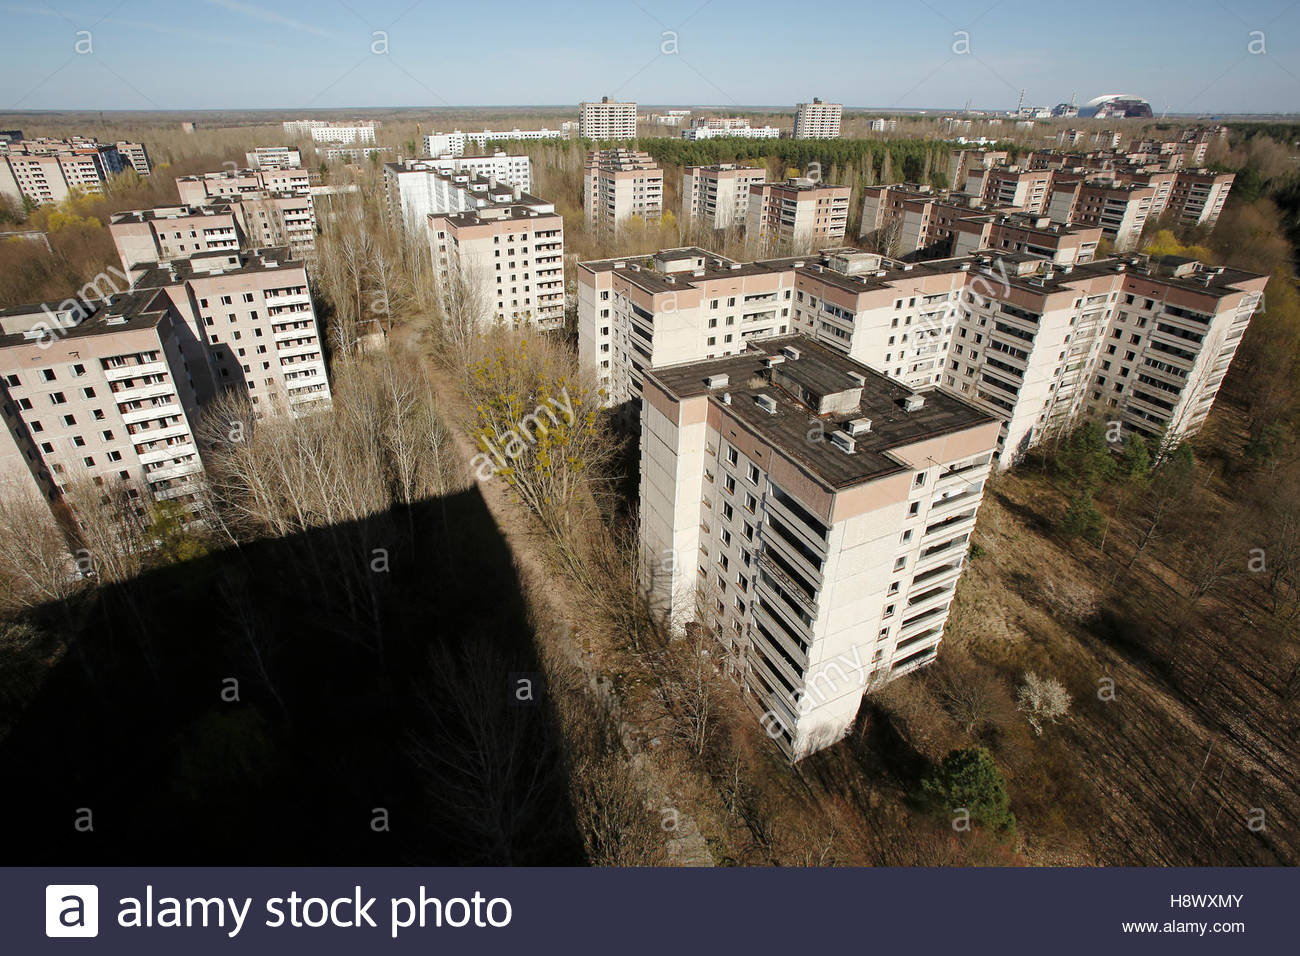 Ghost town of Pripyat and Chernobyl - Ukraine - Stock Image